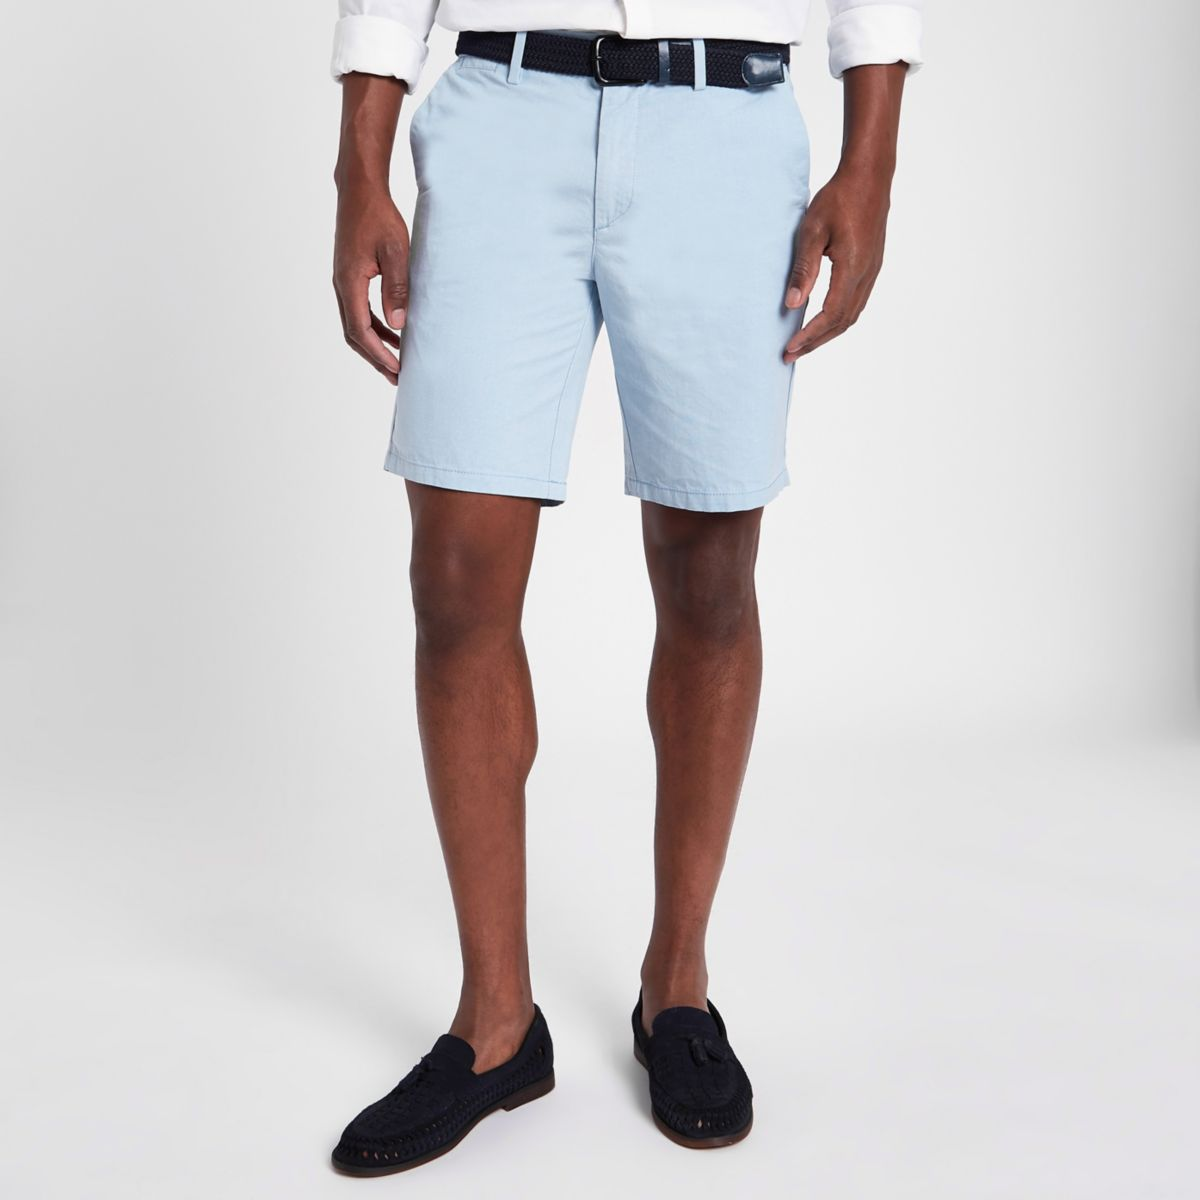 Light blue slim fit Oxford chino shorts